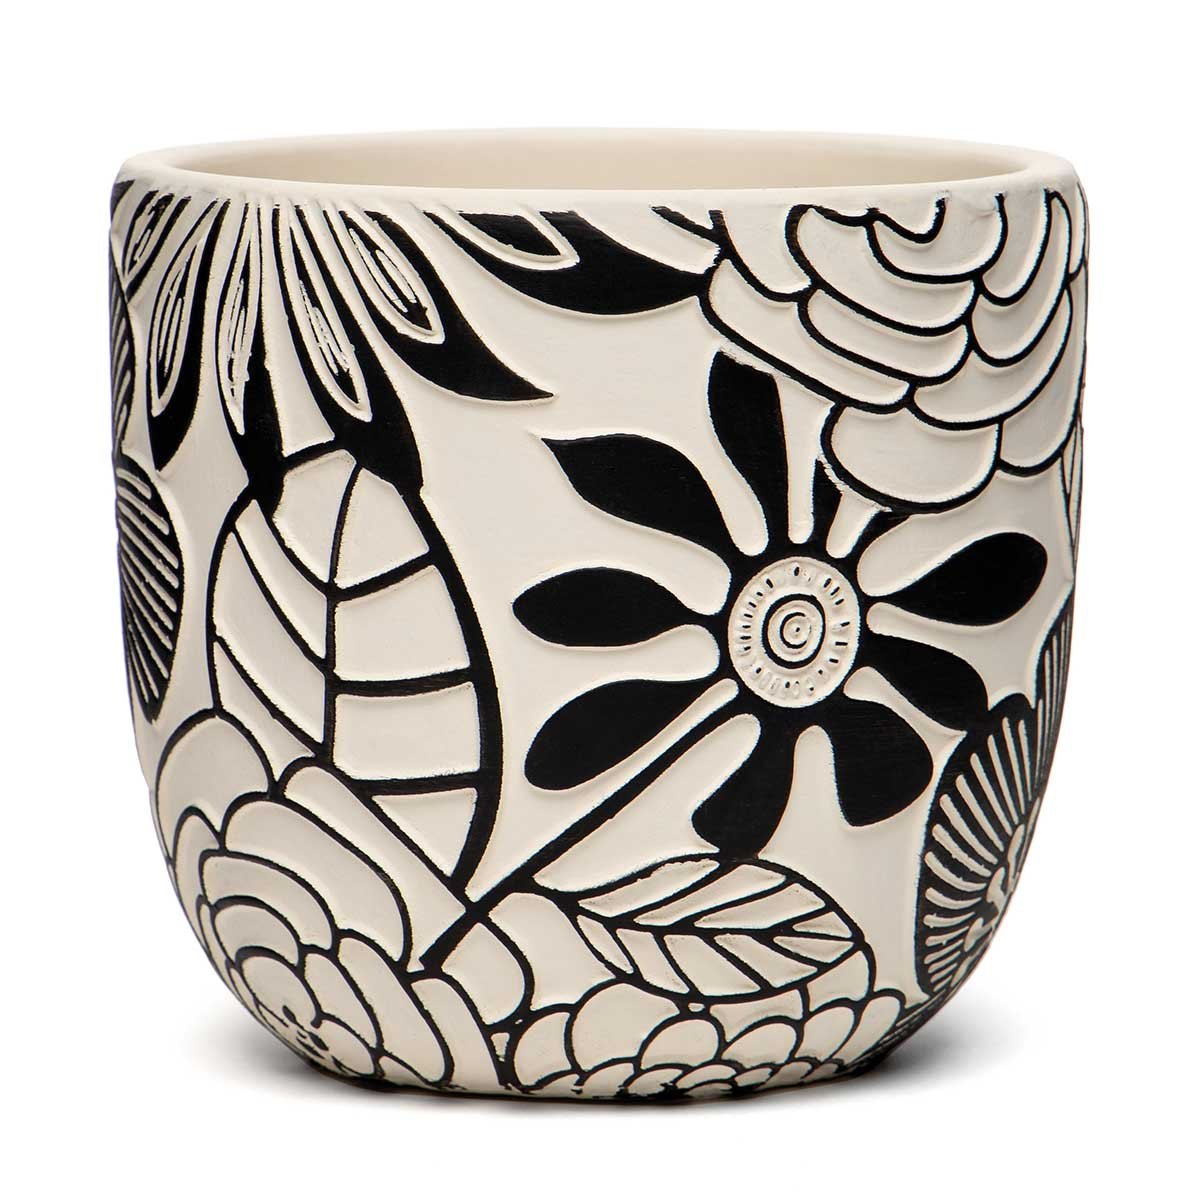 "FLORAL MOTIF TERRA COTTA POT BLACK/WHITE LARGE 5.25""x5"""